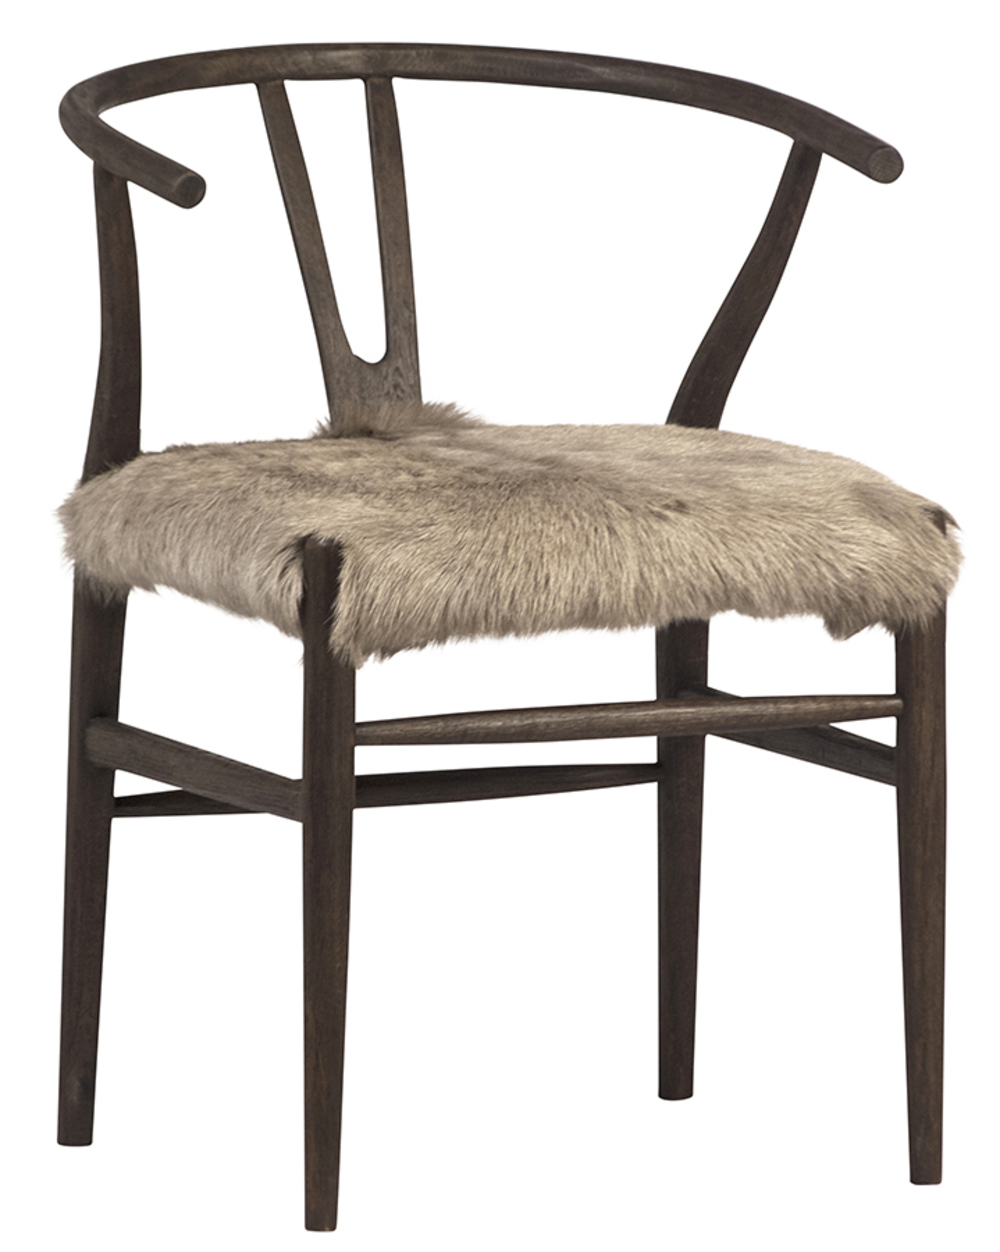 DOVETAIL FURNITURE - Baden Dining Chair